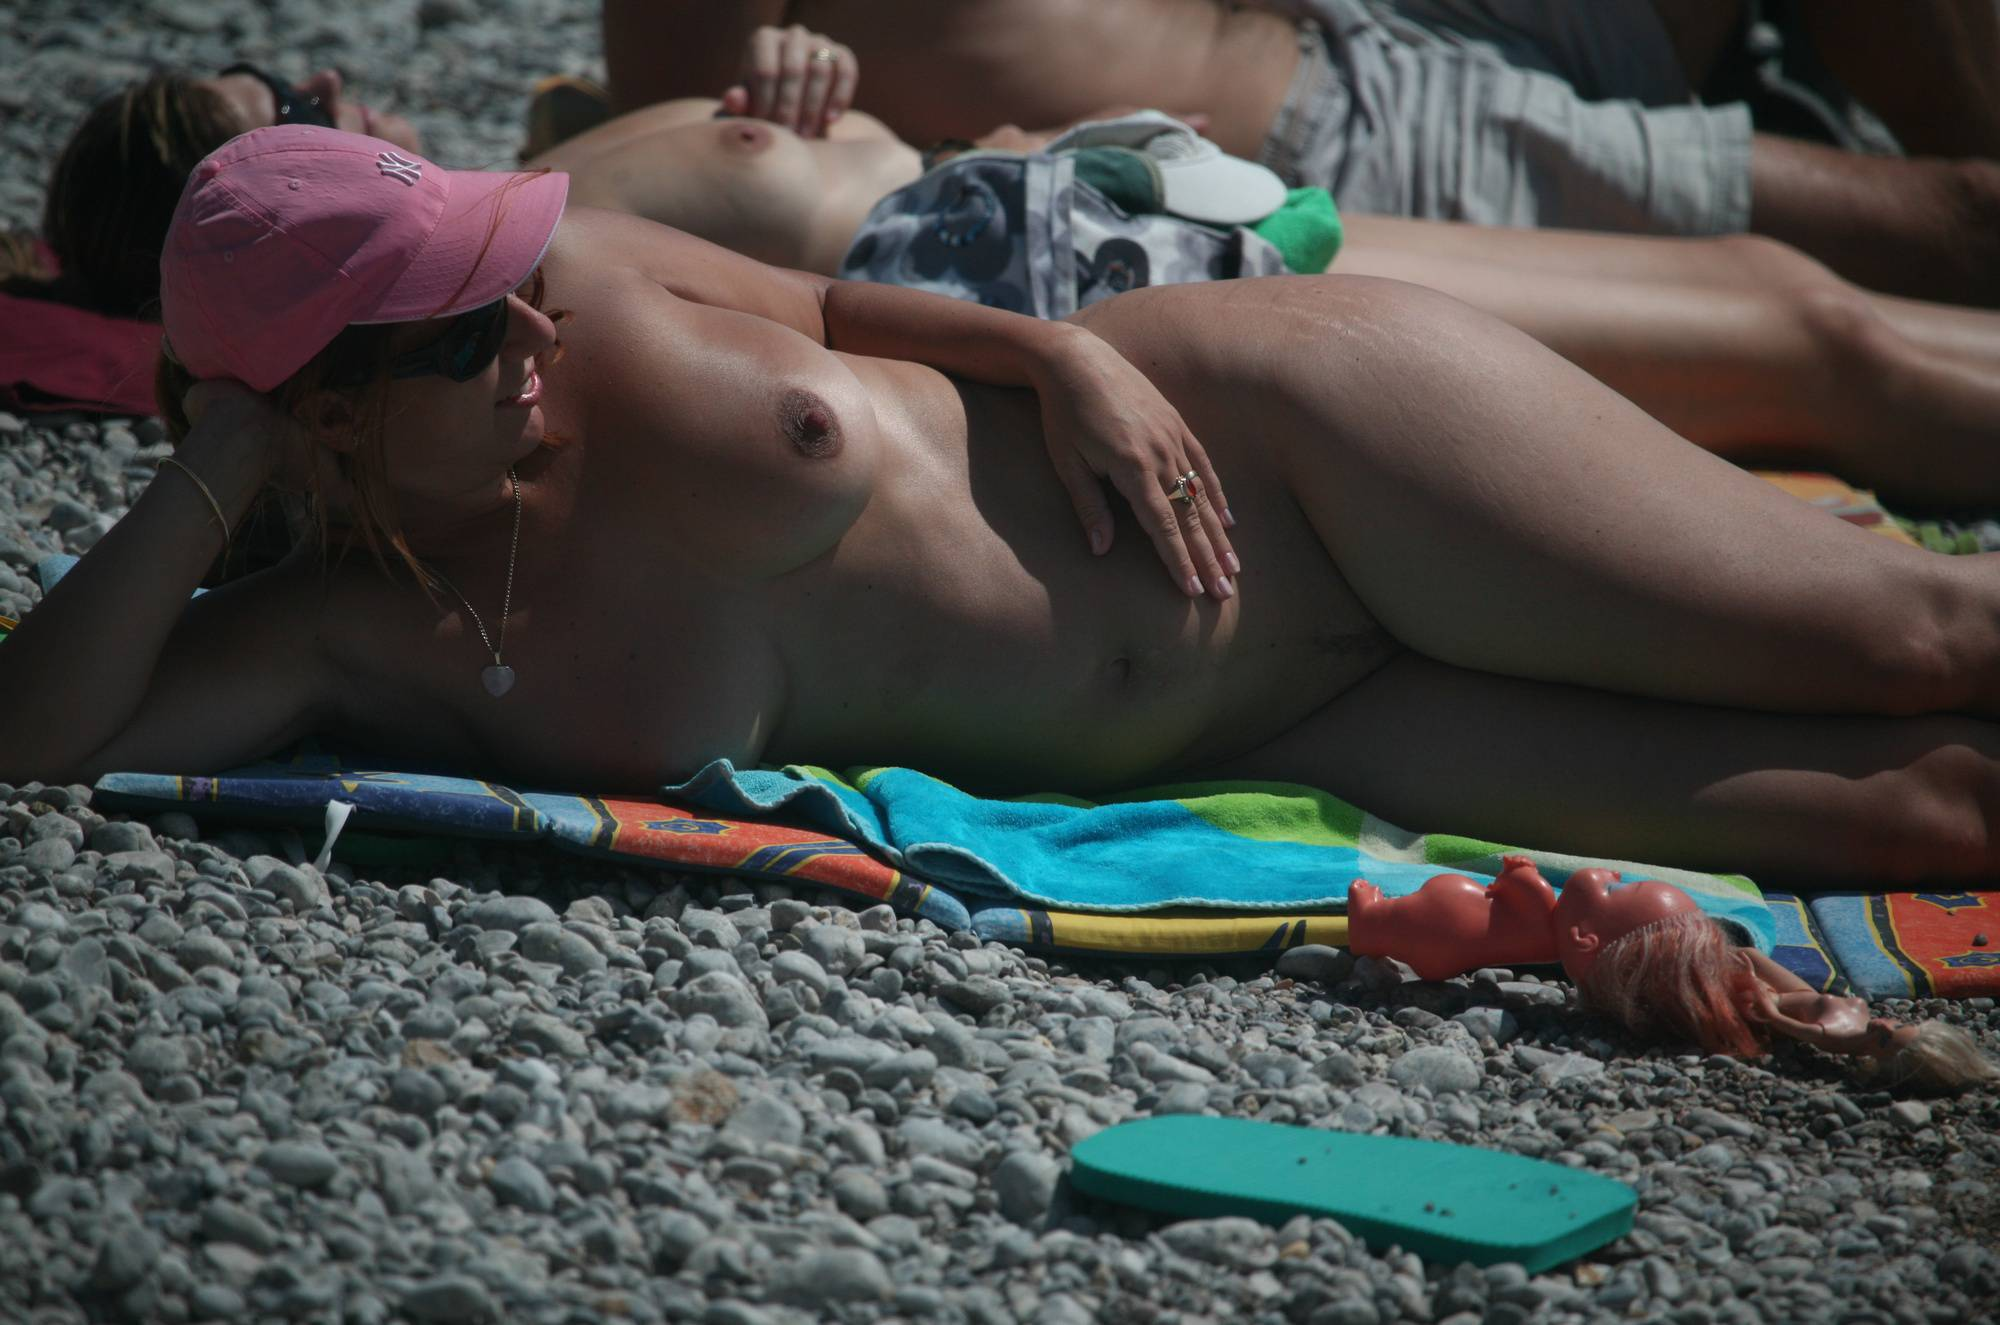 Pure Nudism Images Cove Mother's Destination - 1